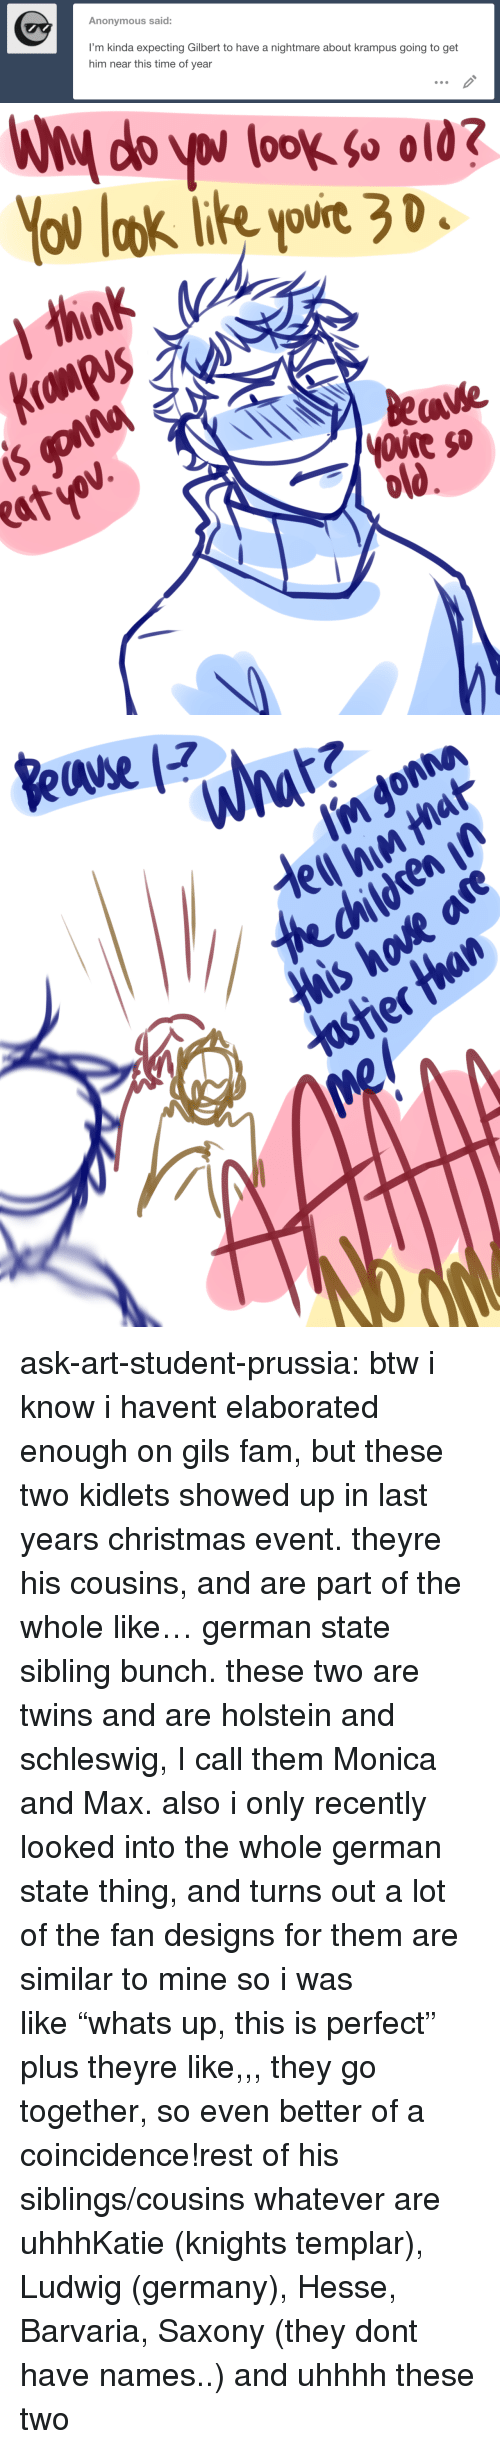 "knights: Anonymous said:  I'm kinda expecting Gilbert to have a nightmare about krampus going to get  him near this time of year   You laok ie yovie 3 D  ourt20  eave  atv ask-art-student-prussia:  btw i know i havent elaborated enough on gils fam, but these two kidlets showed up in last years christmas event. theyre his cousins, and are part of the whole like… german state sibling bunch. these two are twins and are holstein and schleswig, I call them Monica and Max. also i only recently looked into the whole german state thing, and turns out a lot of the fan designs for them are similar to mine so i was like ""whats up, this is perfect"" plus theyre like,,, they go together, so even better of a coincidence!rest of his siblings/cousins whatever are uhhhKatie (knights templar), Ludwig (germany), Hesse, Barvaria, Saxony (they dont have names..) and uhhhh these two"